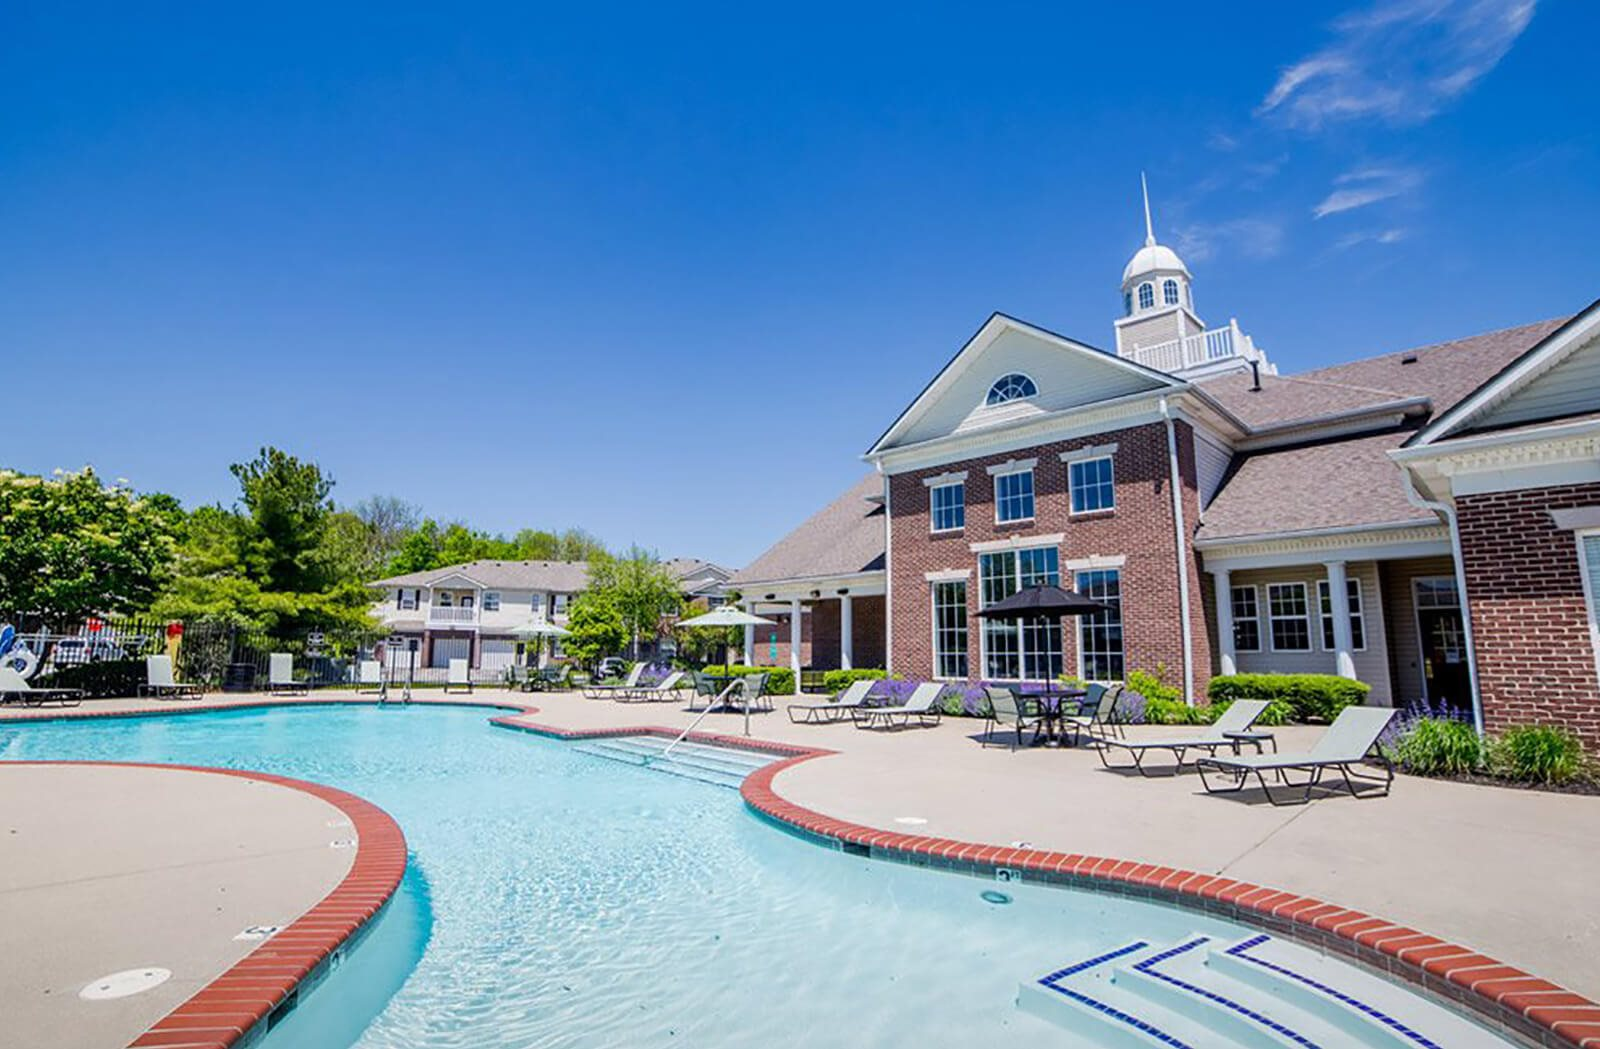 The Reserve at Williams Glen Apartments in Zionsville, IN